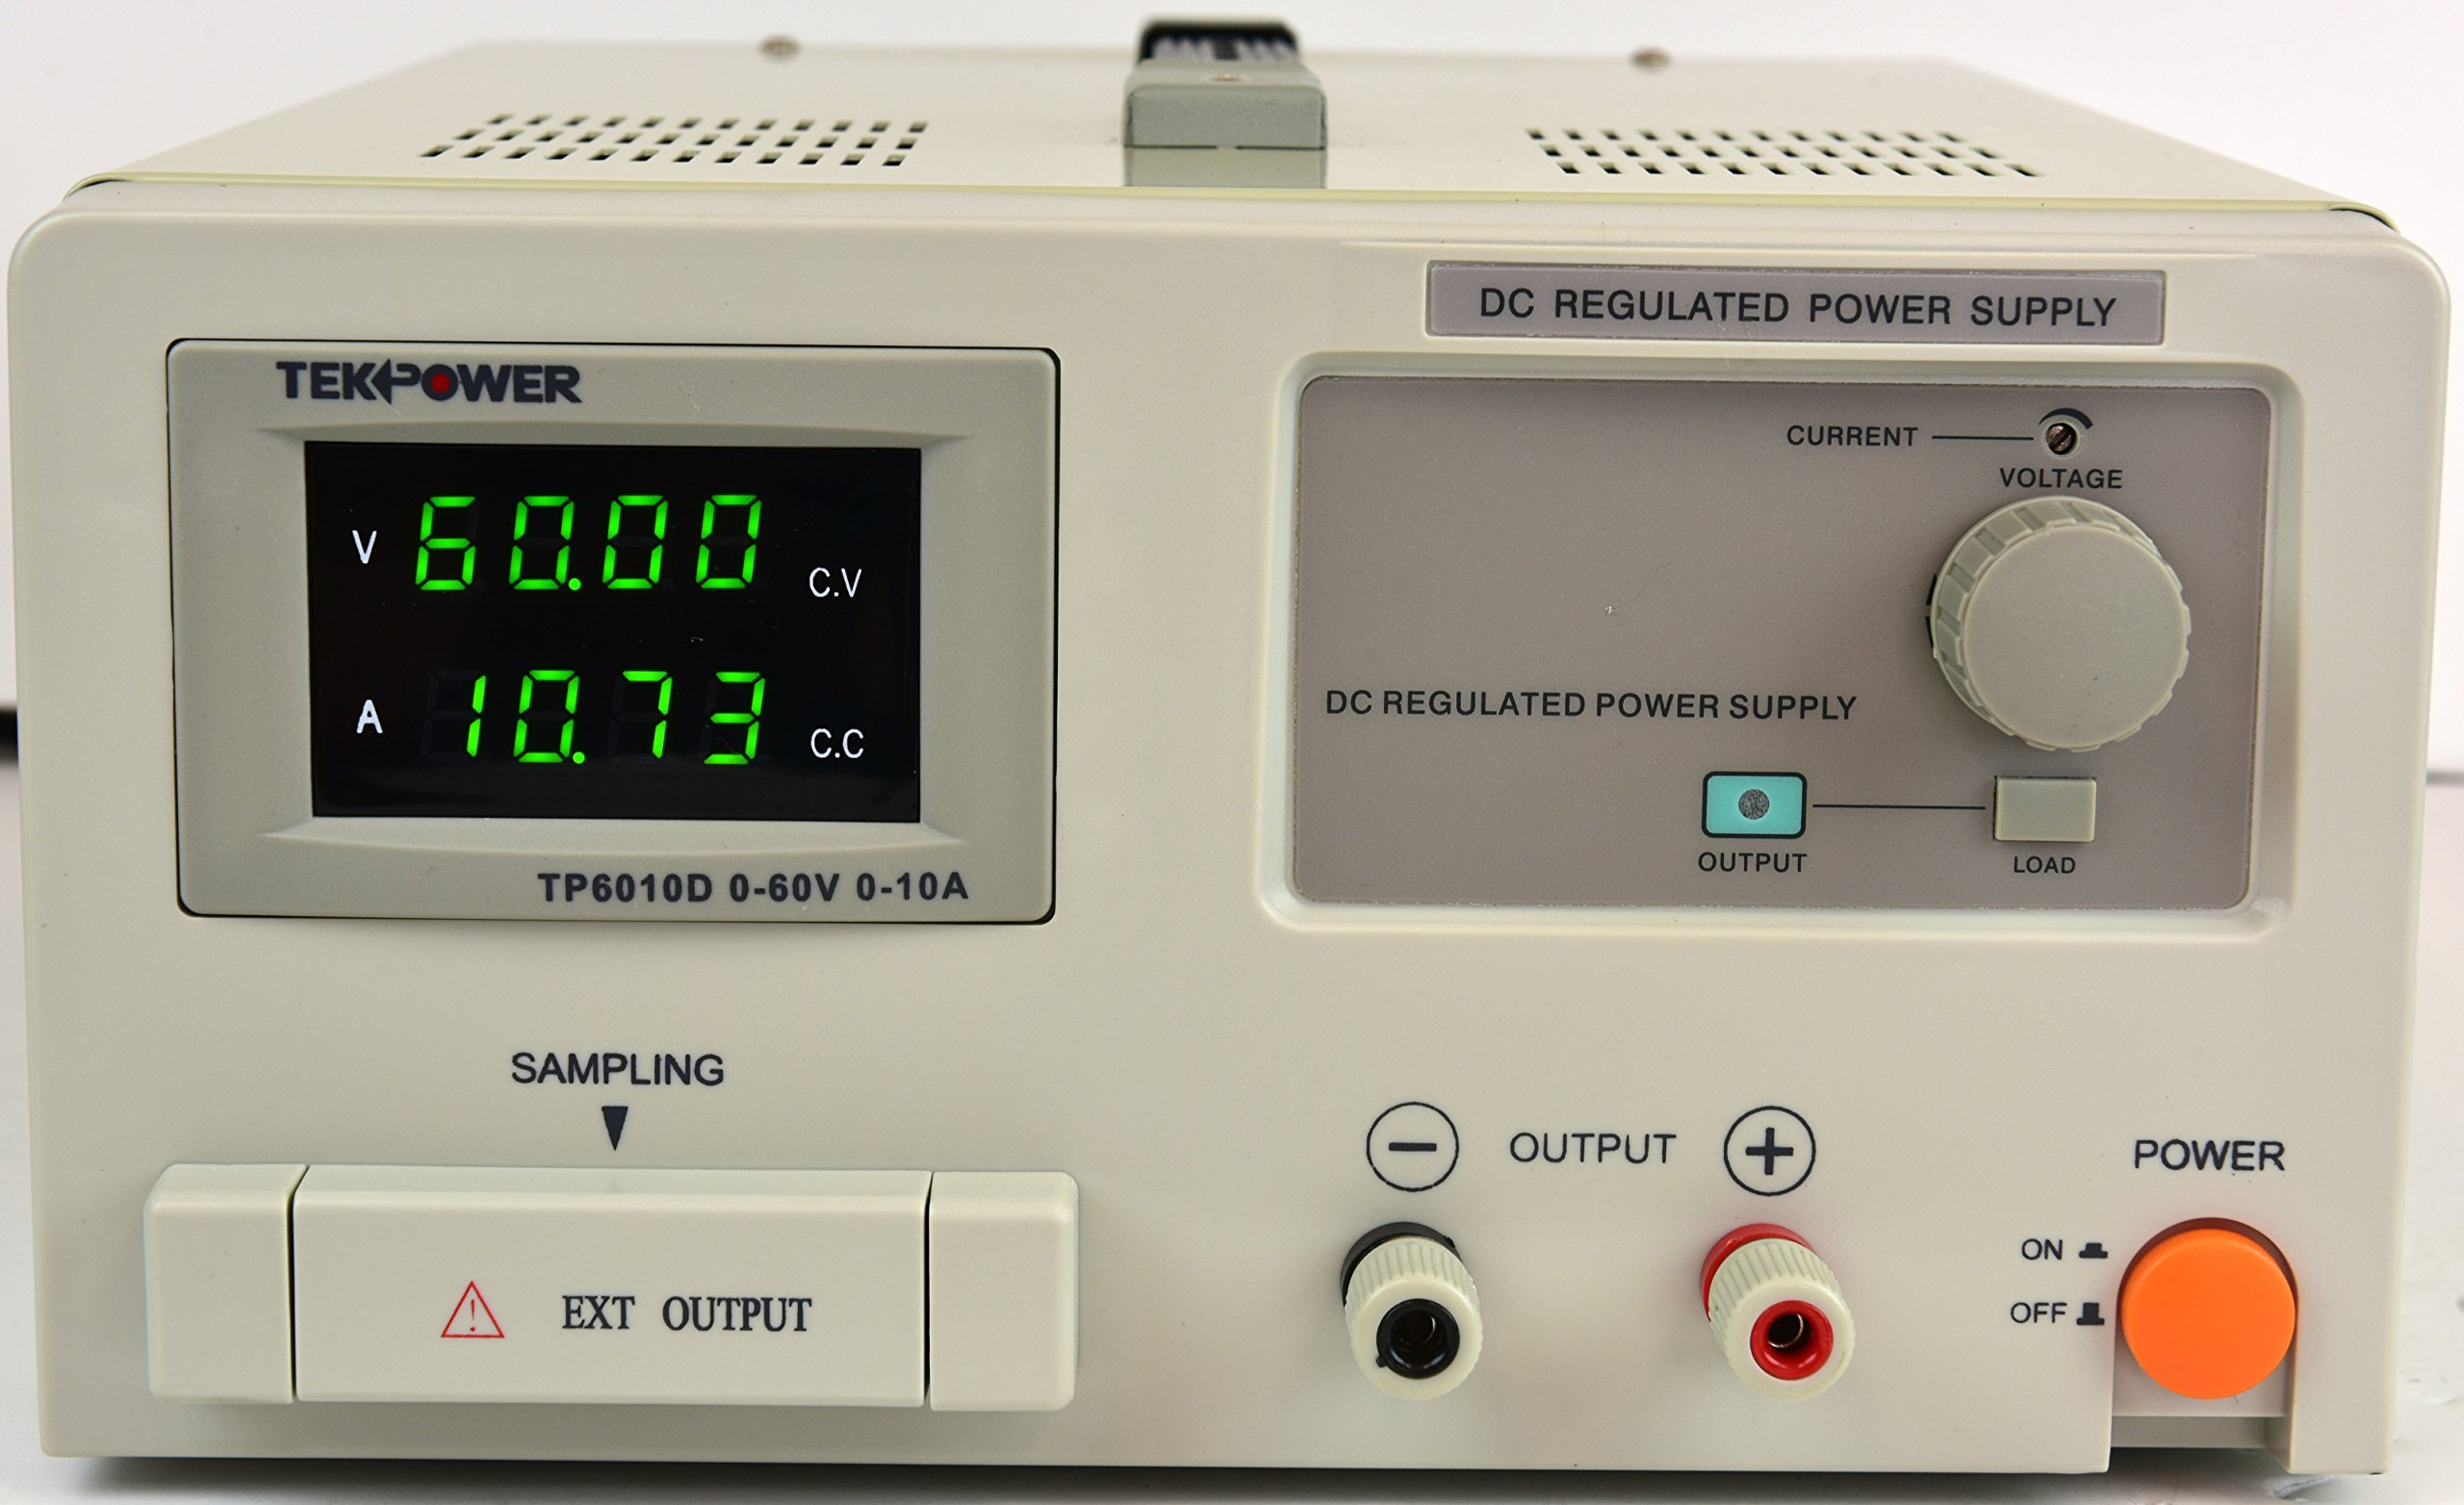 TekPower TP6010D DC Adjustable Regulated Linear Power Supply, Transformer Type Clean Power Source (60Volt/ 10A), Better than Mastech, TP3005D,HY3005D